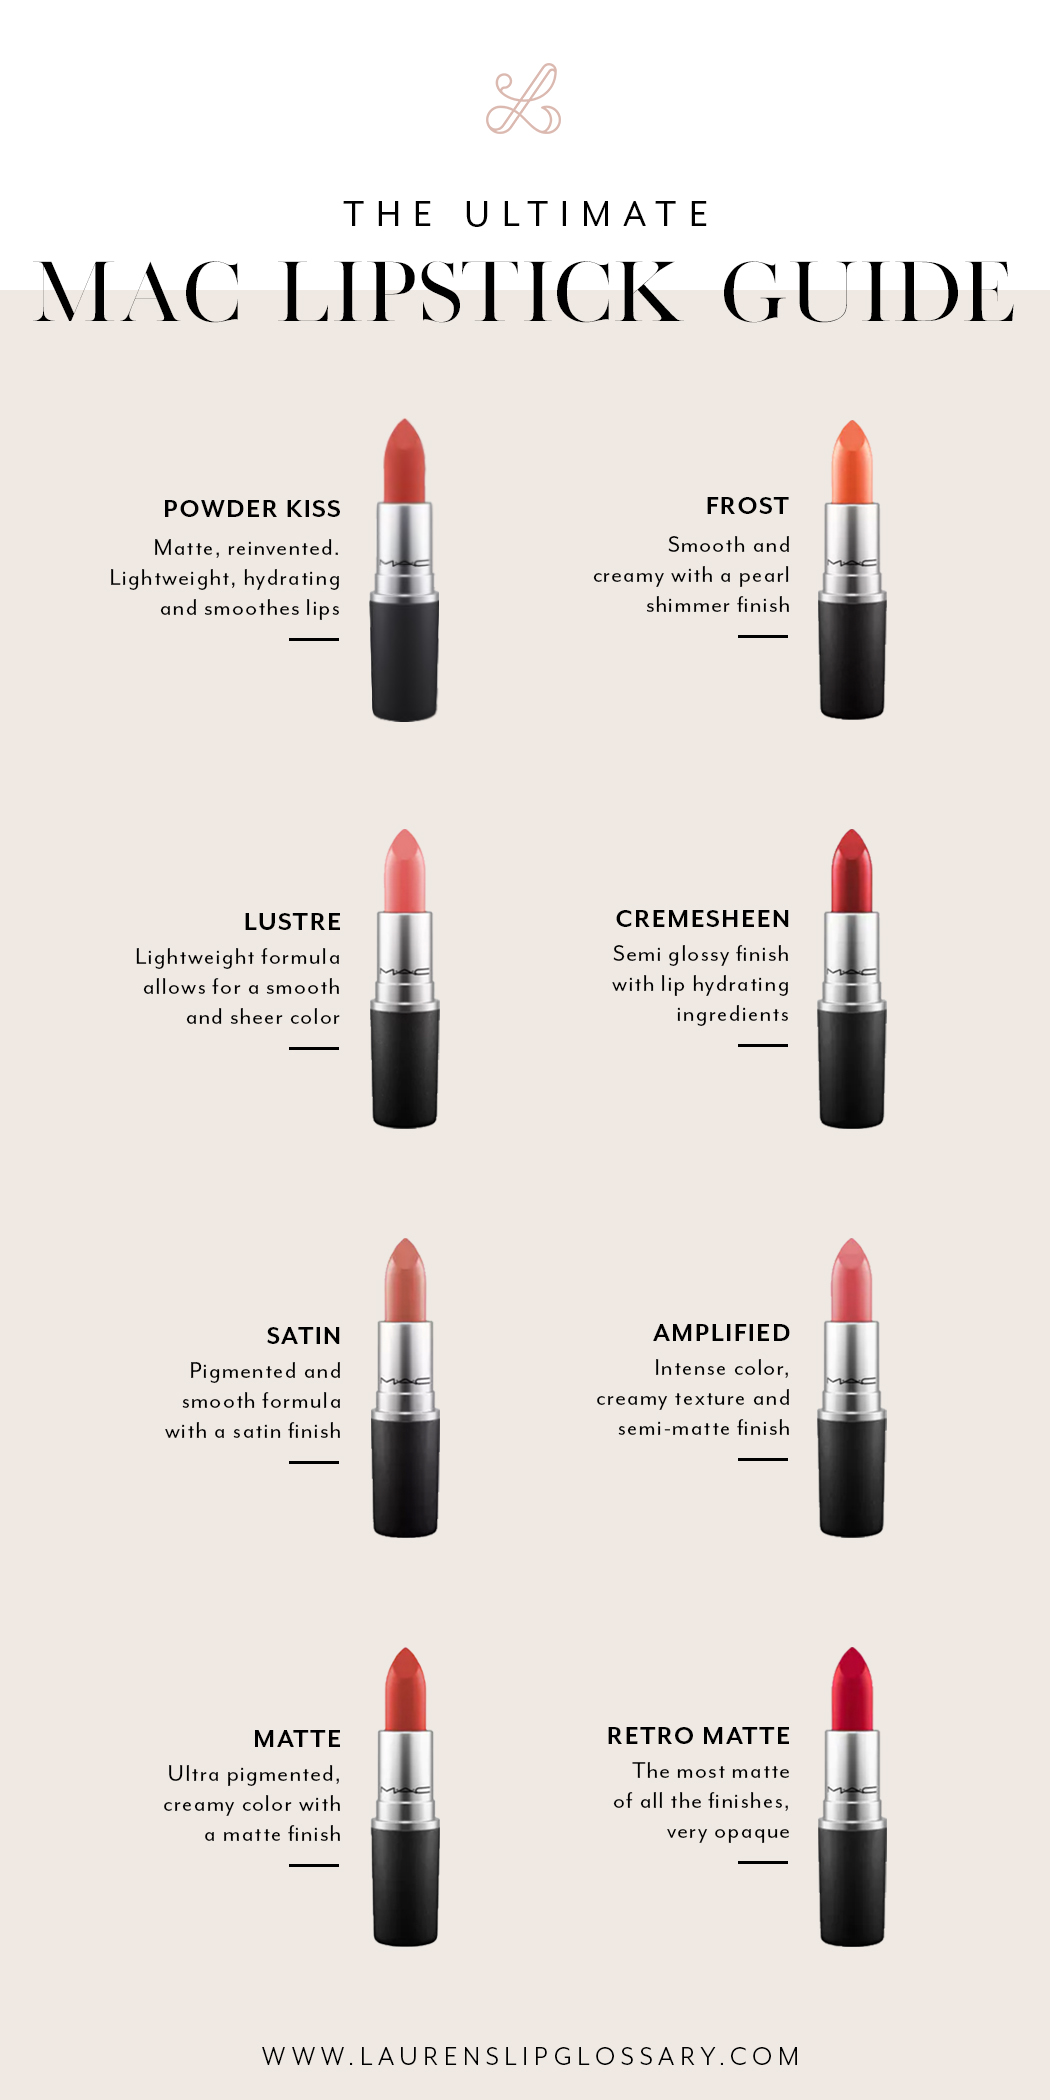 MAC Lipstick Guide